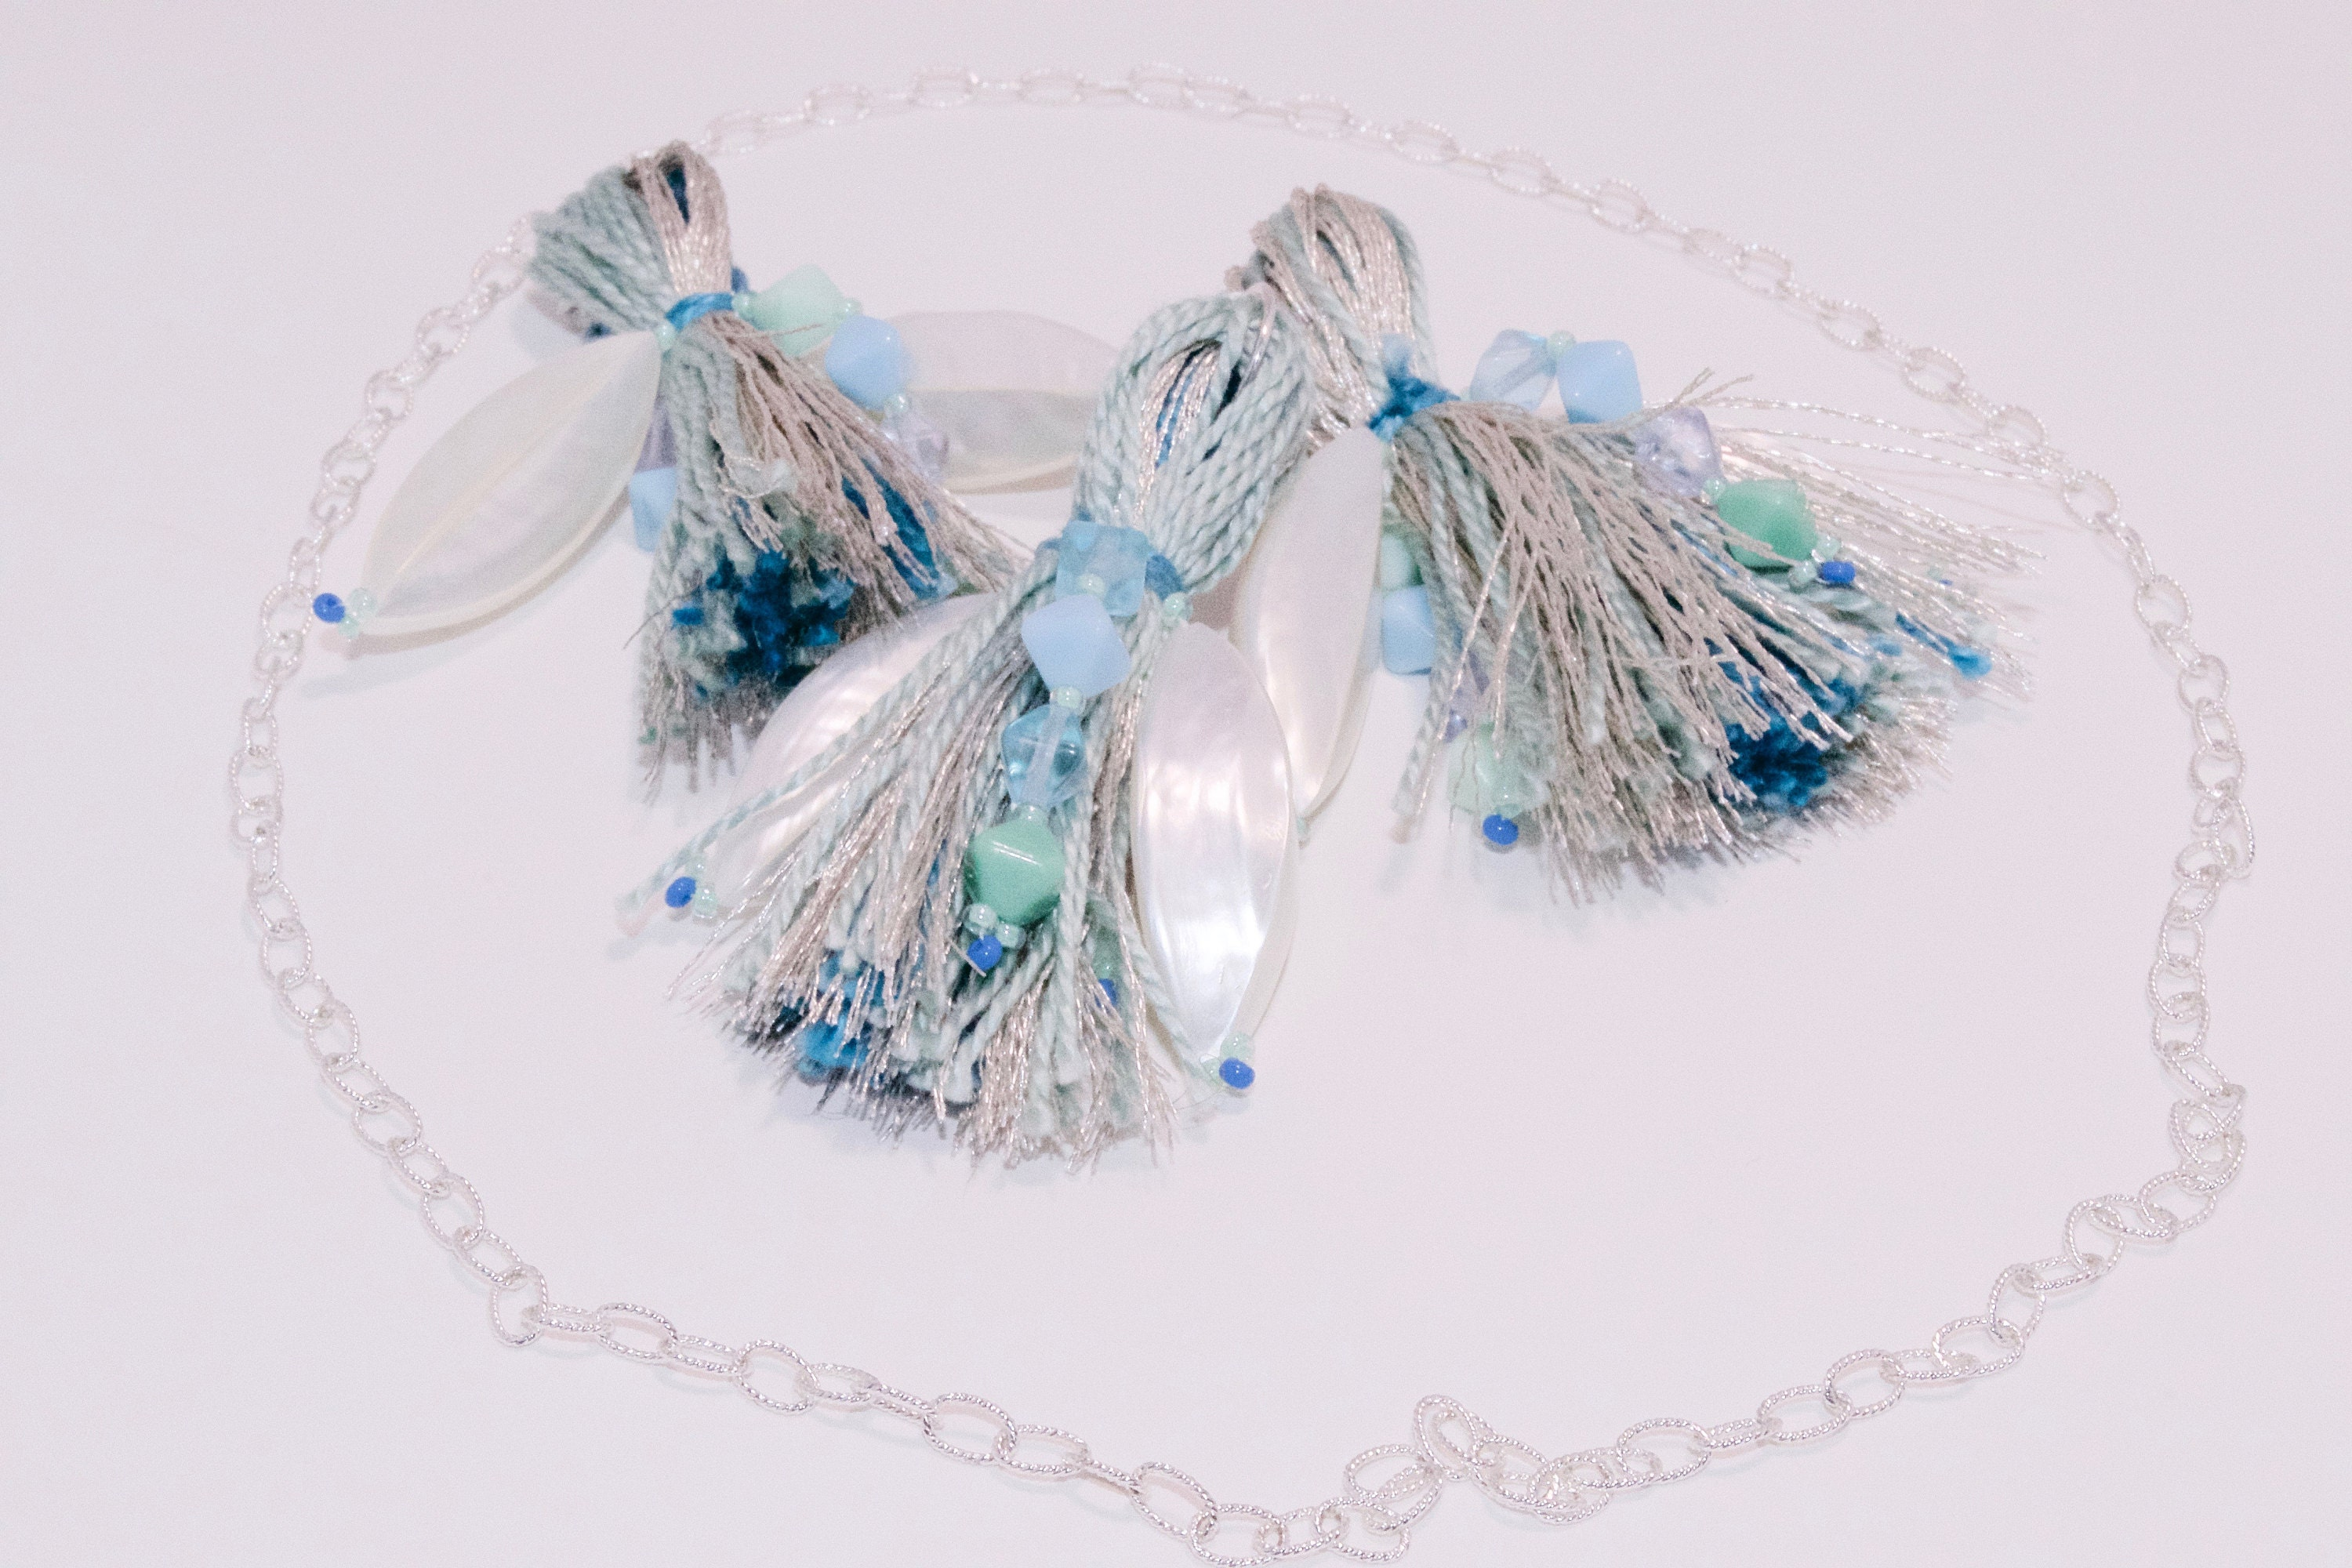 Three tassels in silver and sea green with a large pearlescent bead each and a silver chain around them